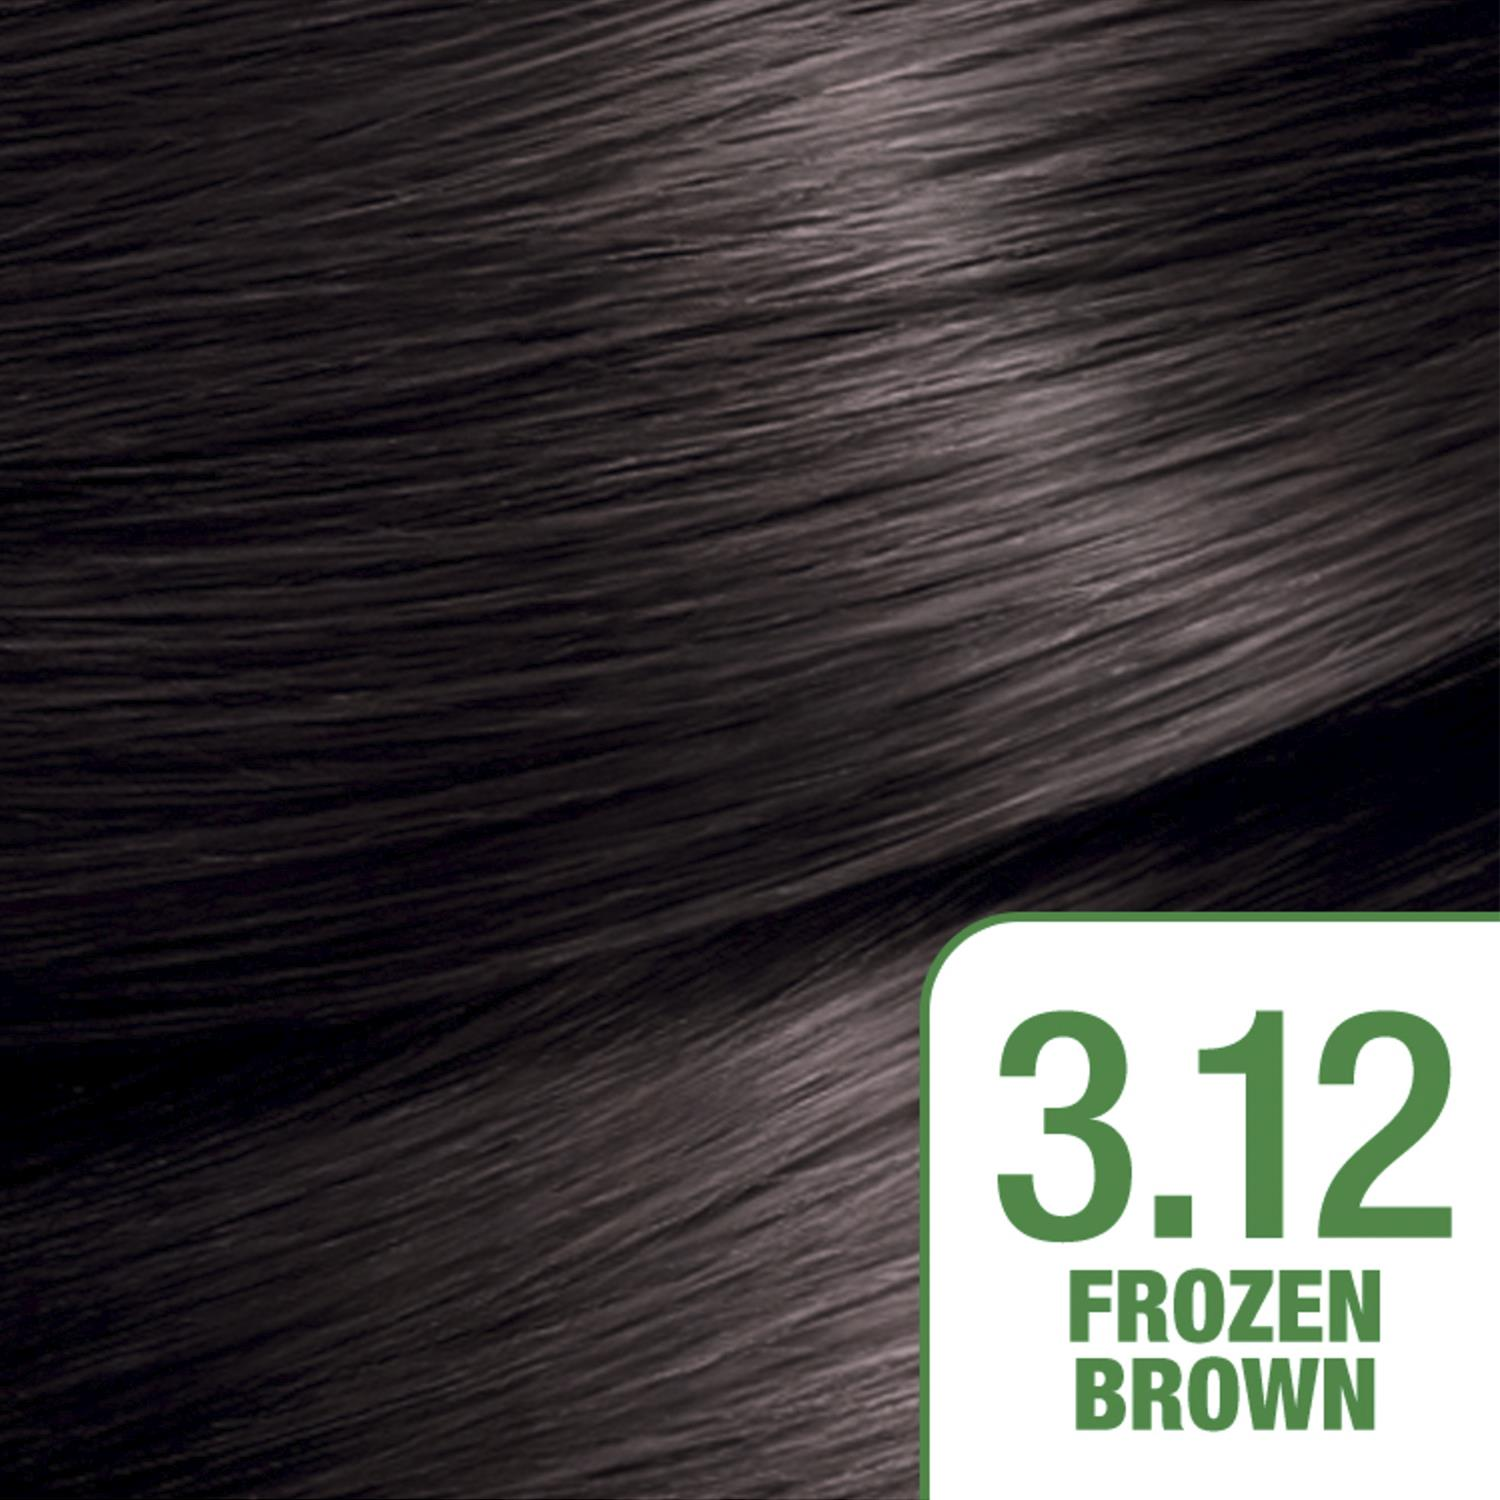 thumbnail 50 - 3 Pack Garnier Nutrisse Permanent Hair Dye With Different Shades